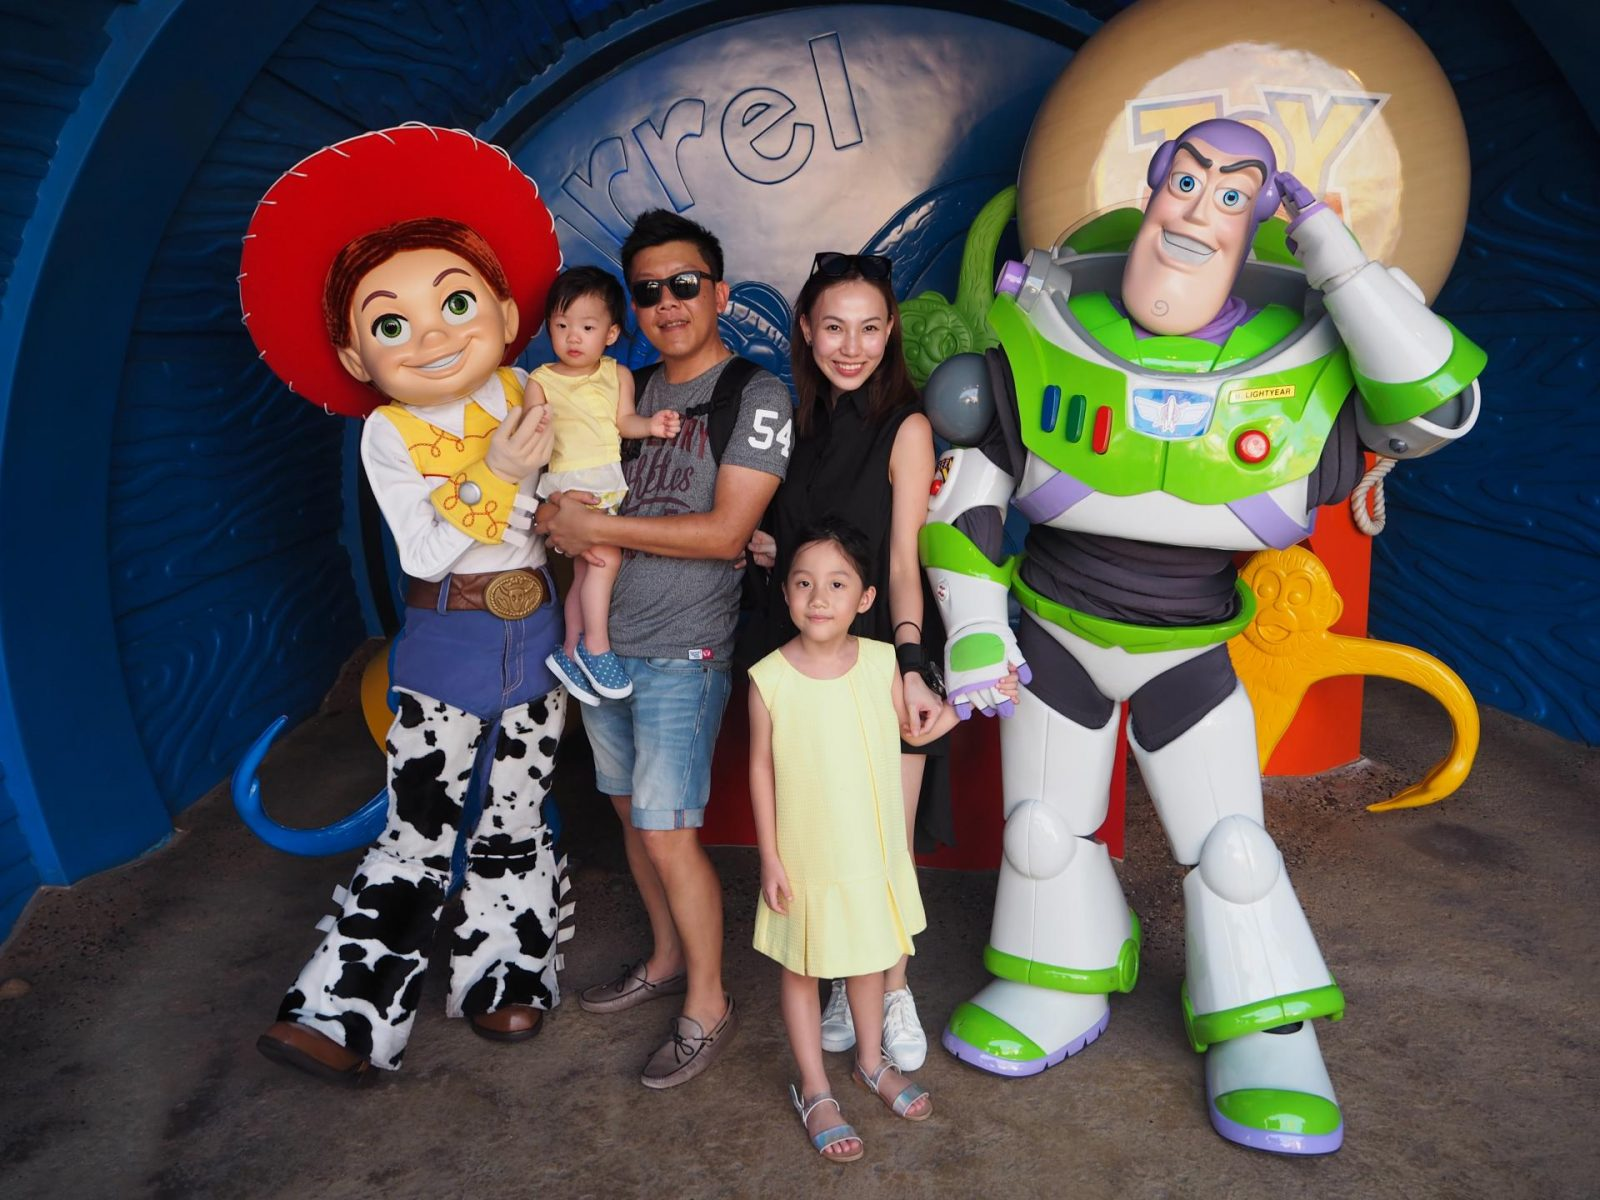 Hong Kong Disneyland Toy story